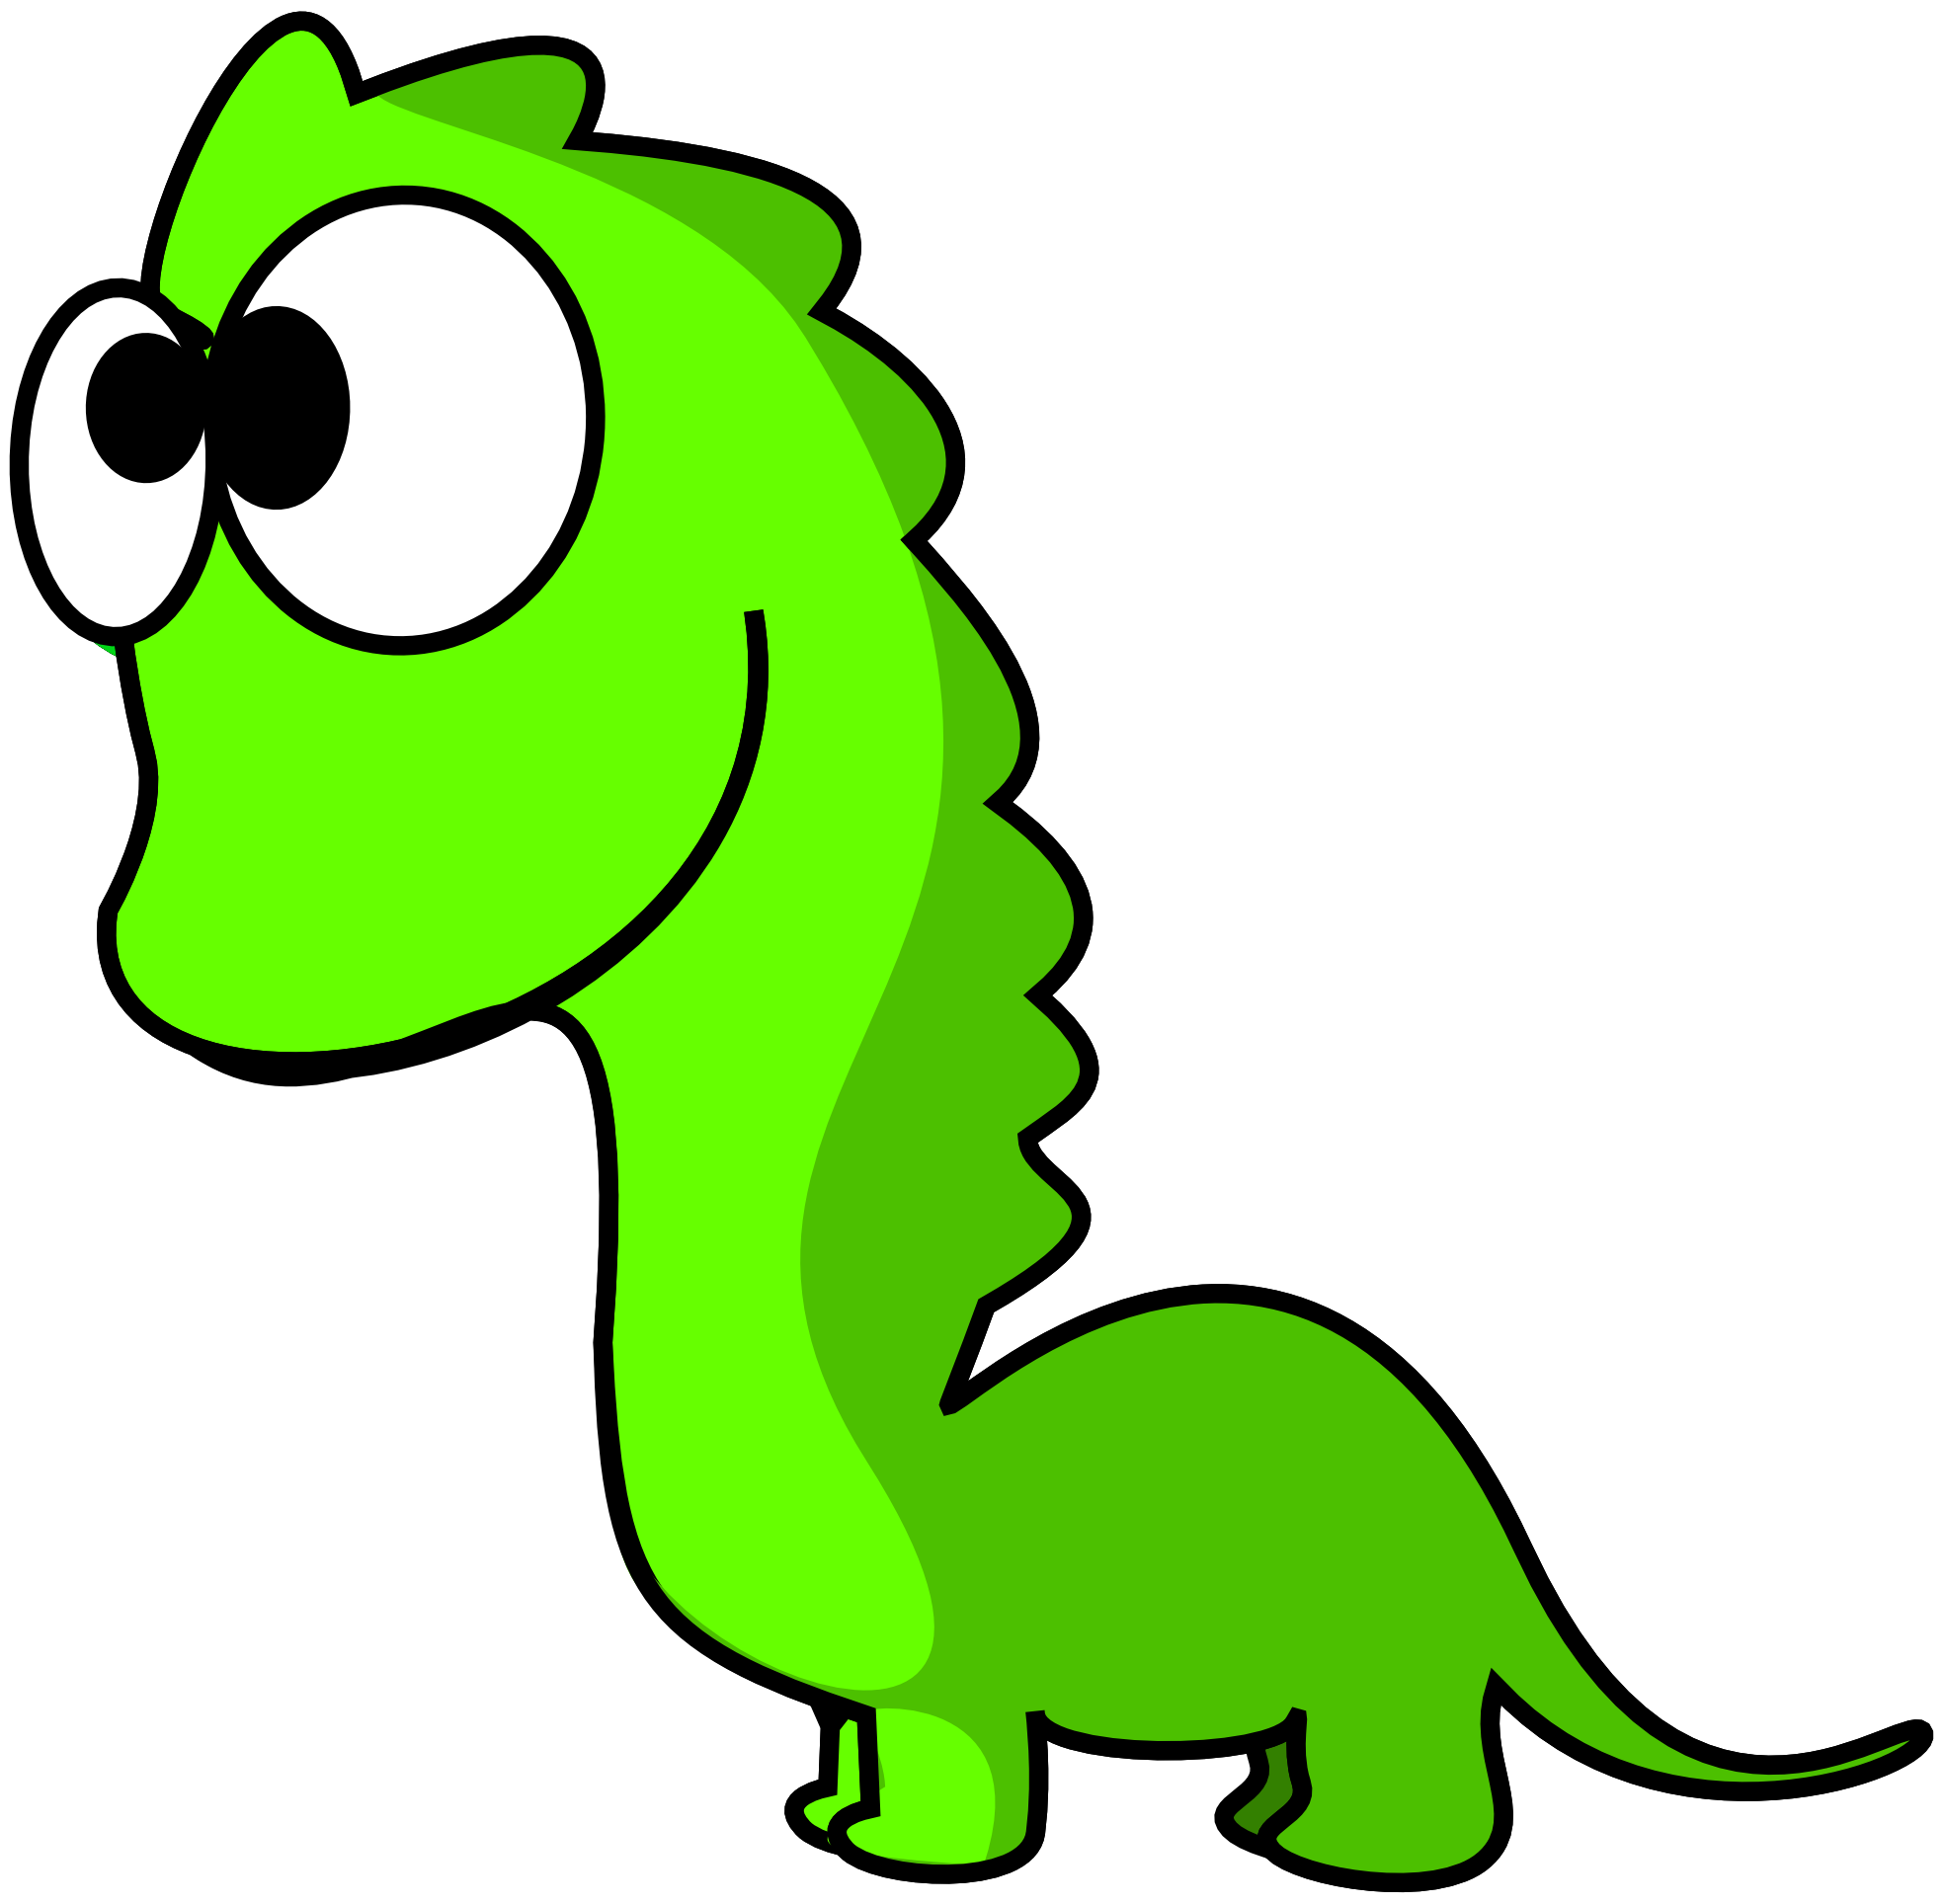 Dinosaur outline at getdrawings. Snake clipart comic